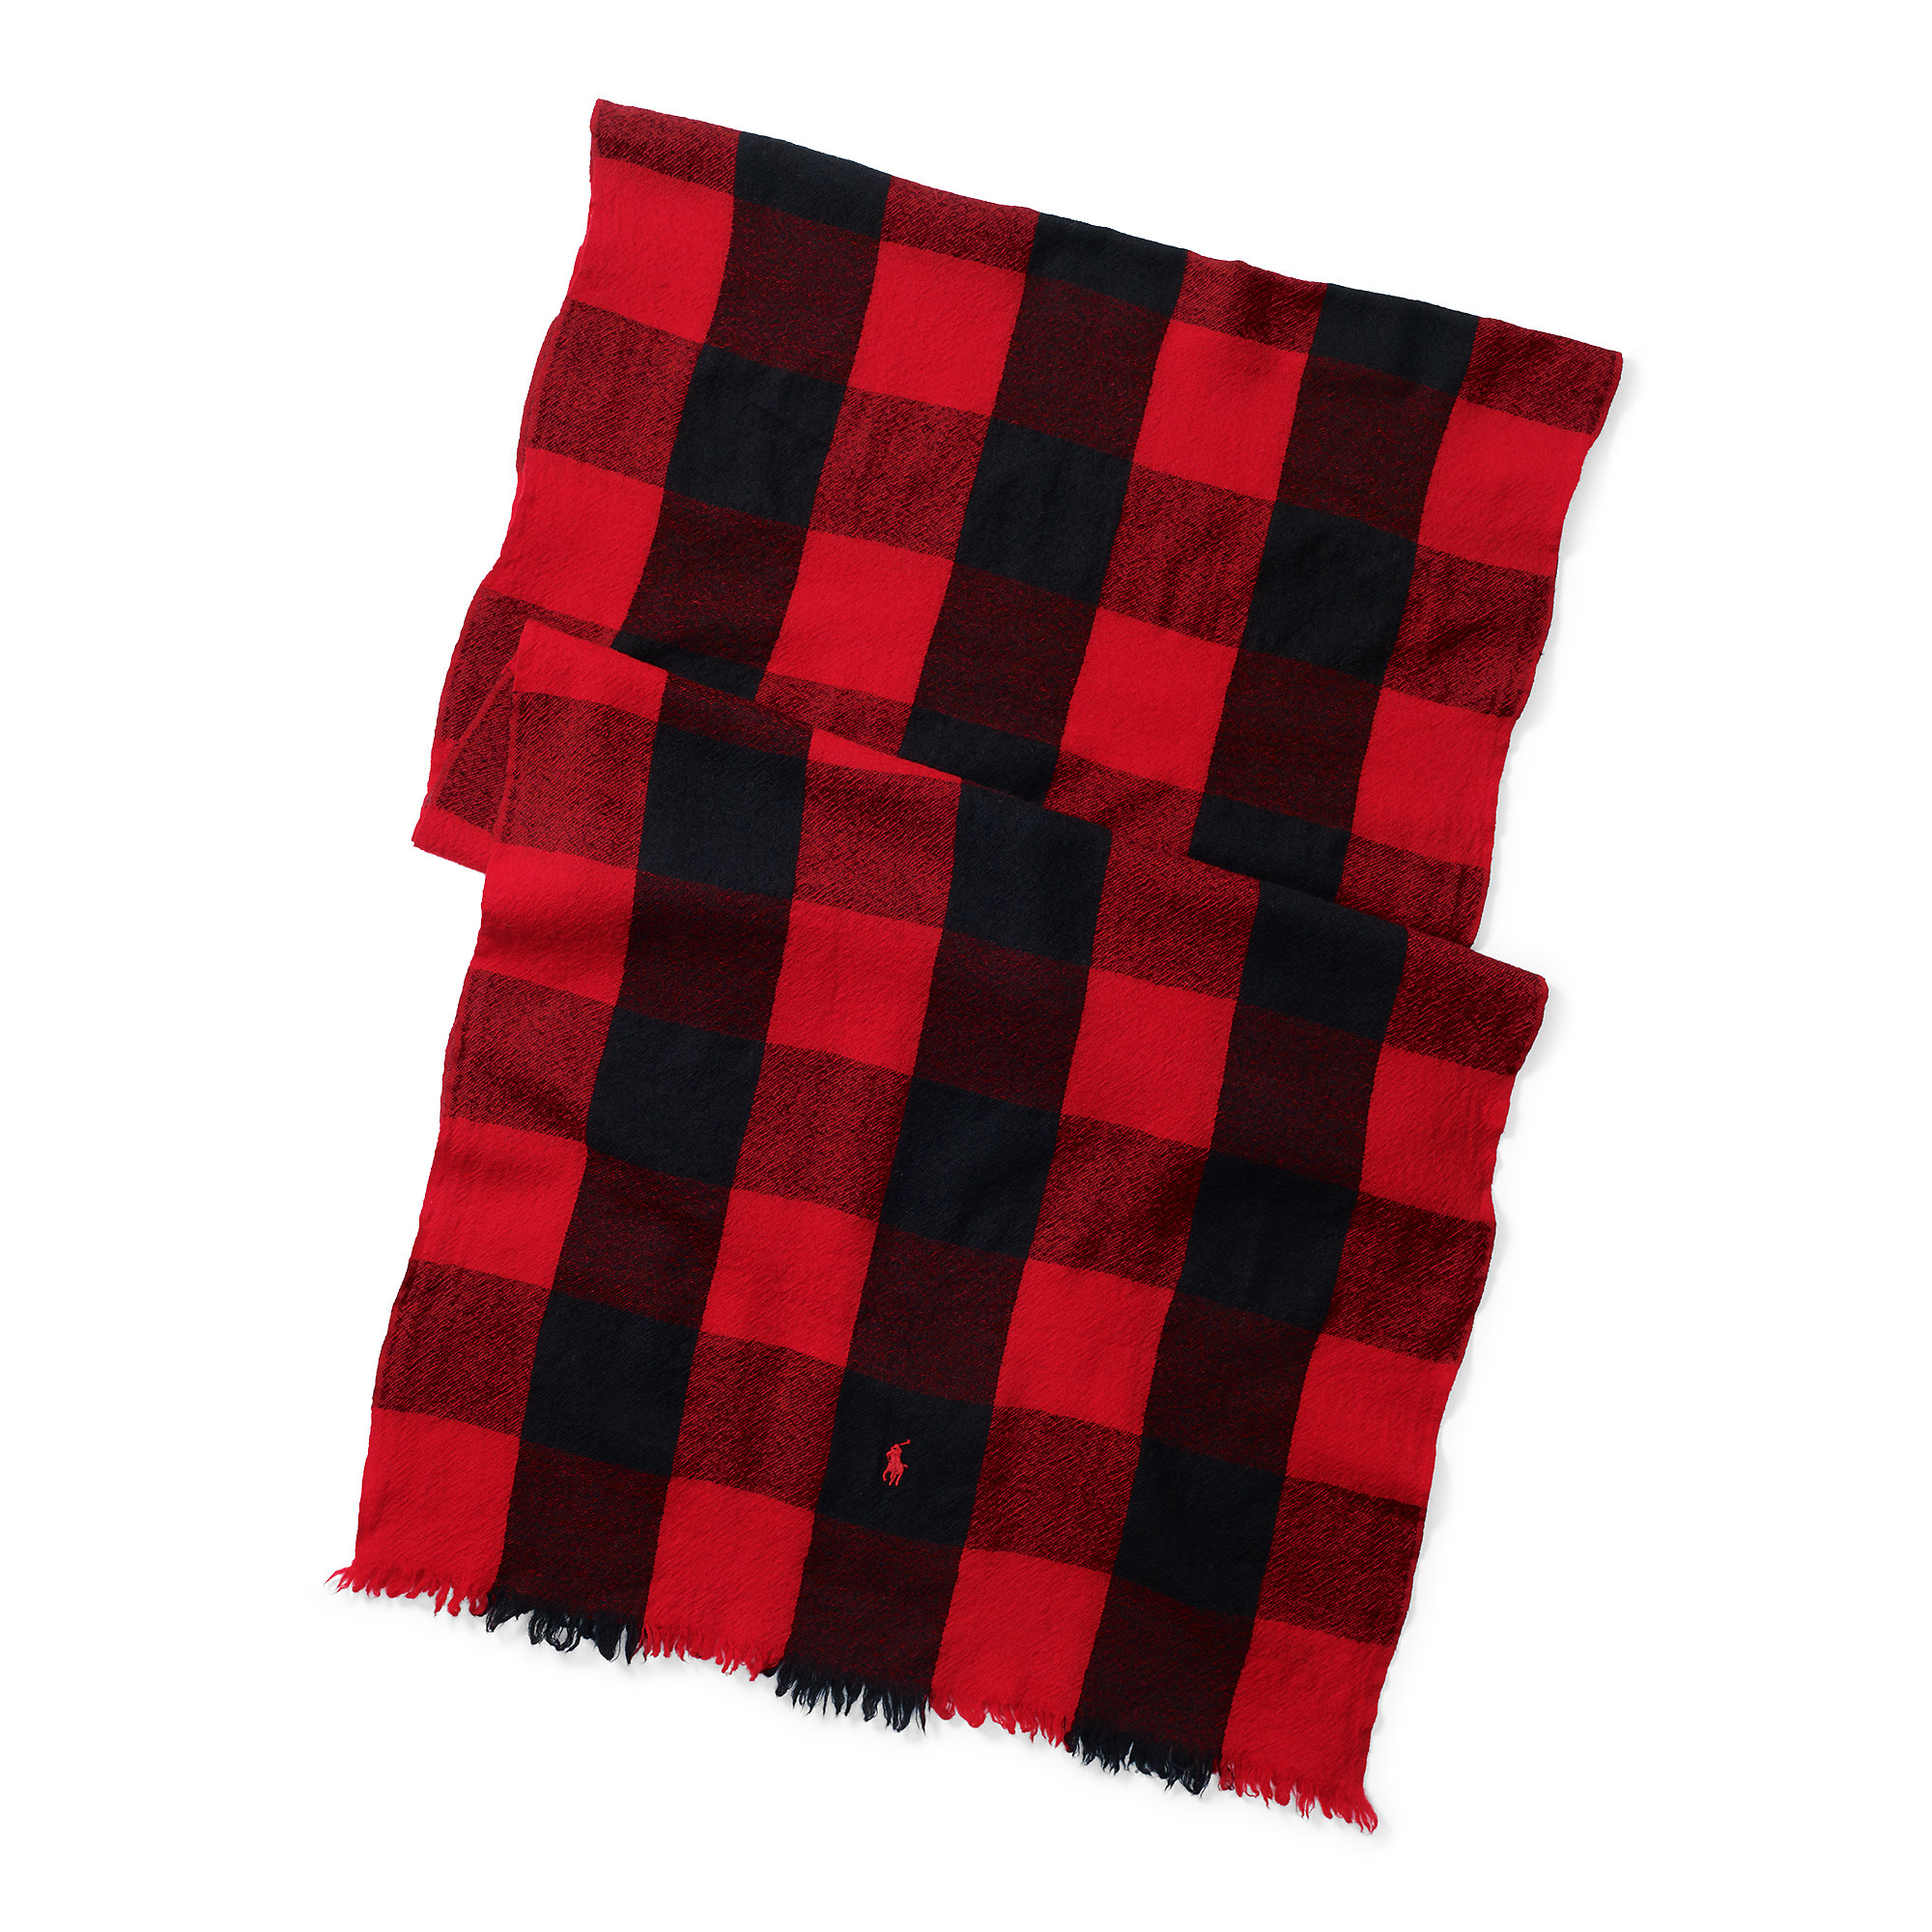 77747f671be ... hot lyst polo ralph lauren buffalo check wool scarf in red for men  75463 dca64